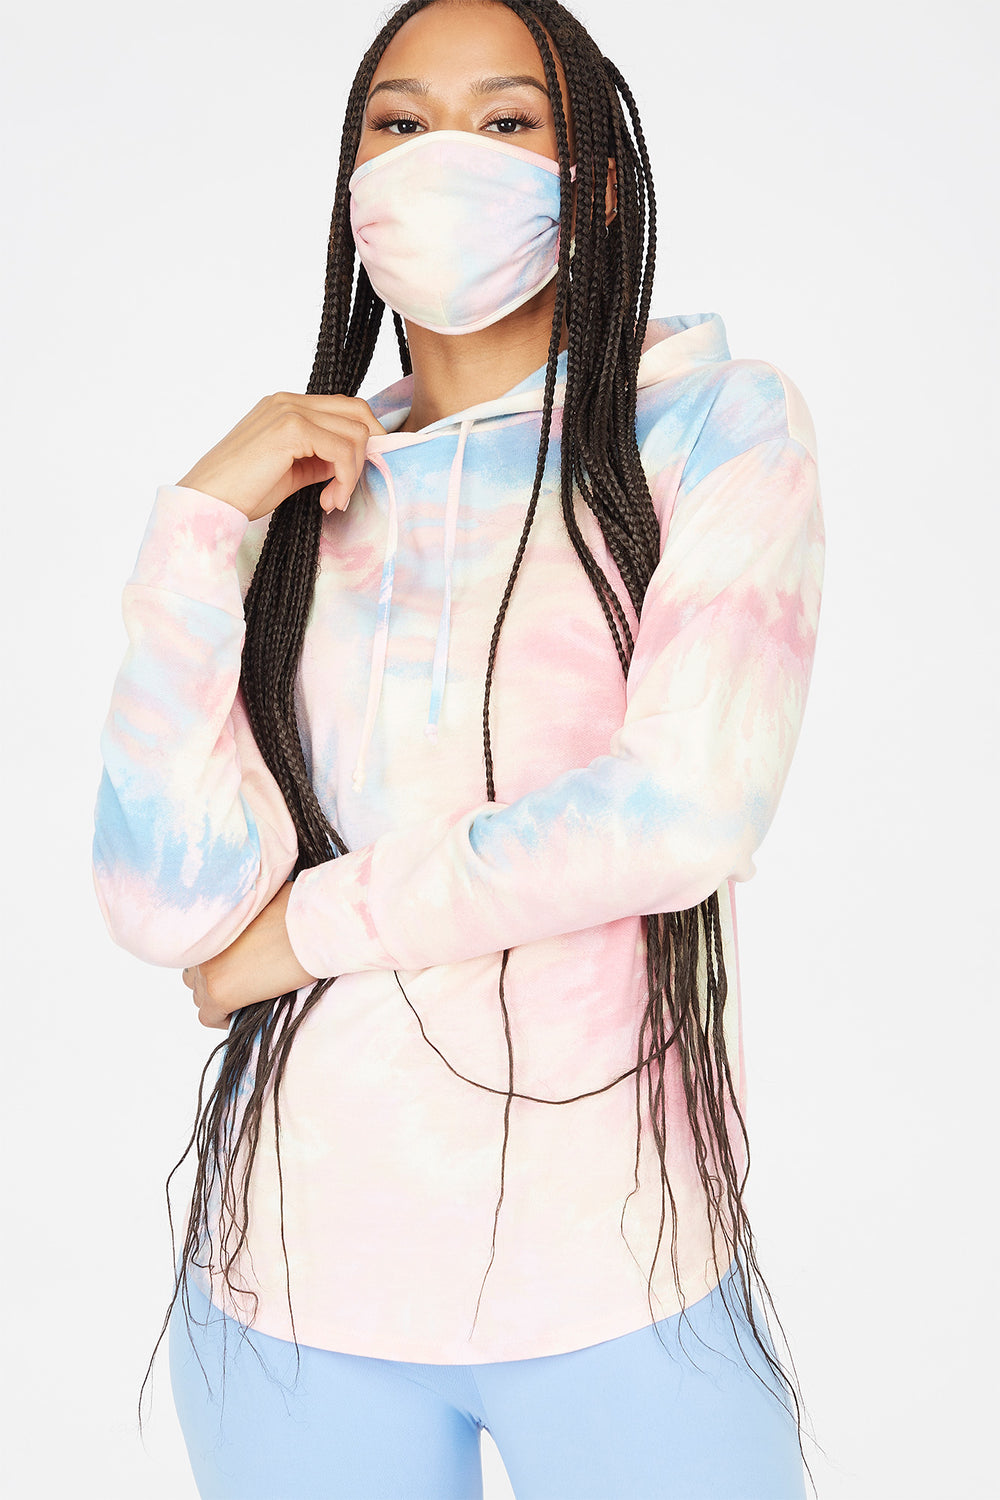 2-Piece Soft Fleece Multi Tie Dye Hoodie With Washable & Reusable Protective Face Mask Set Multi